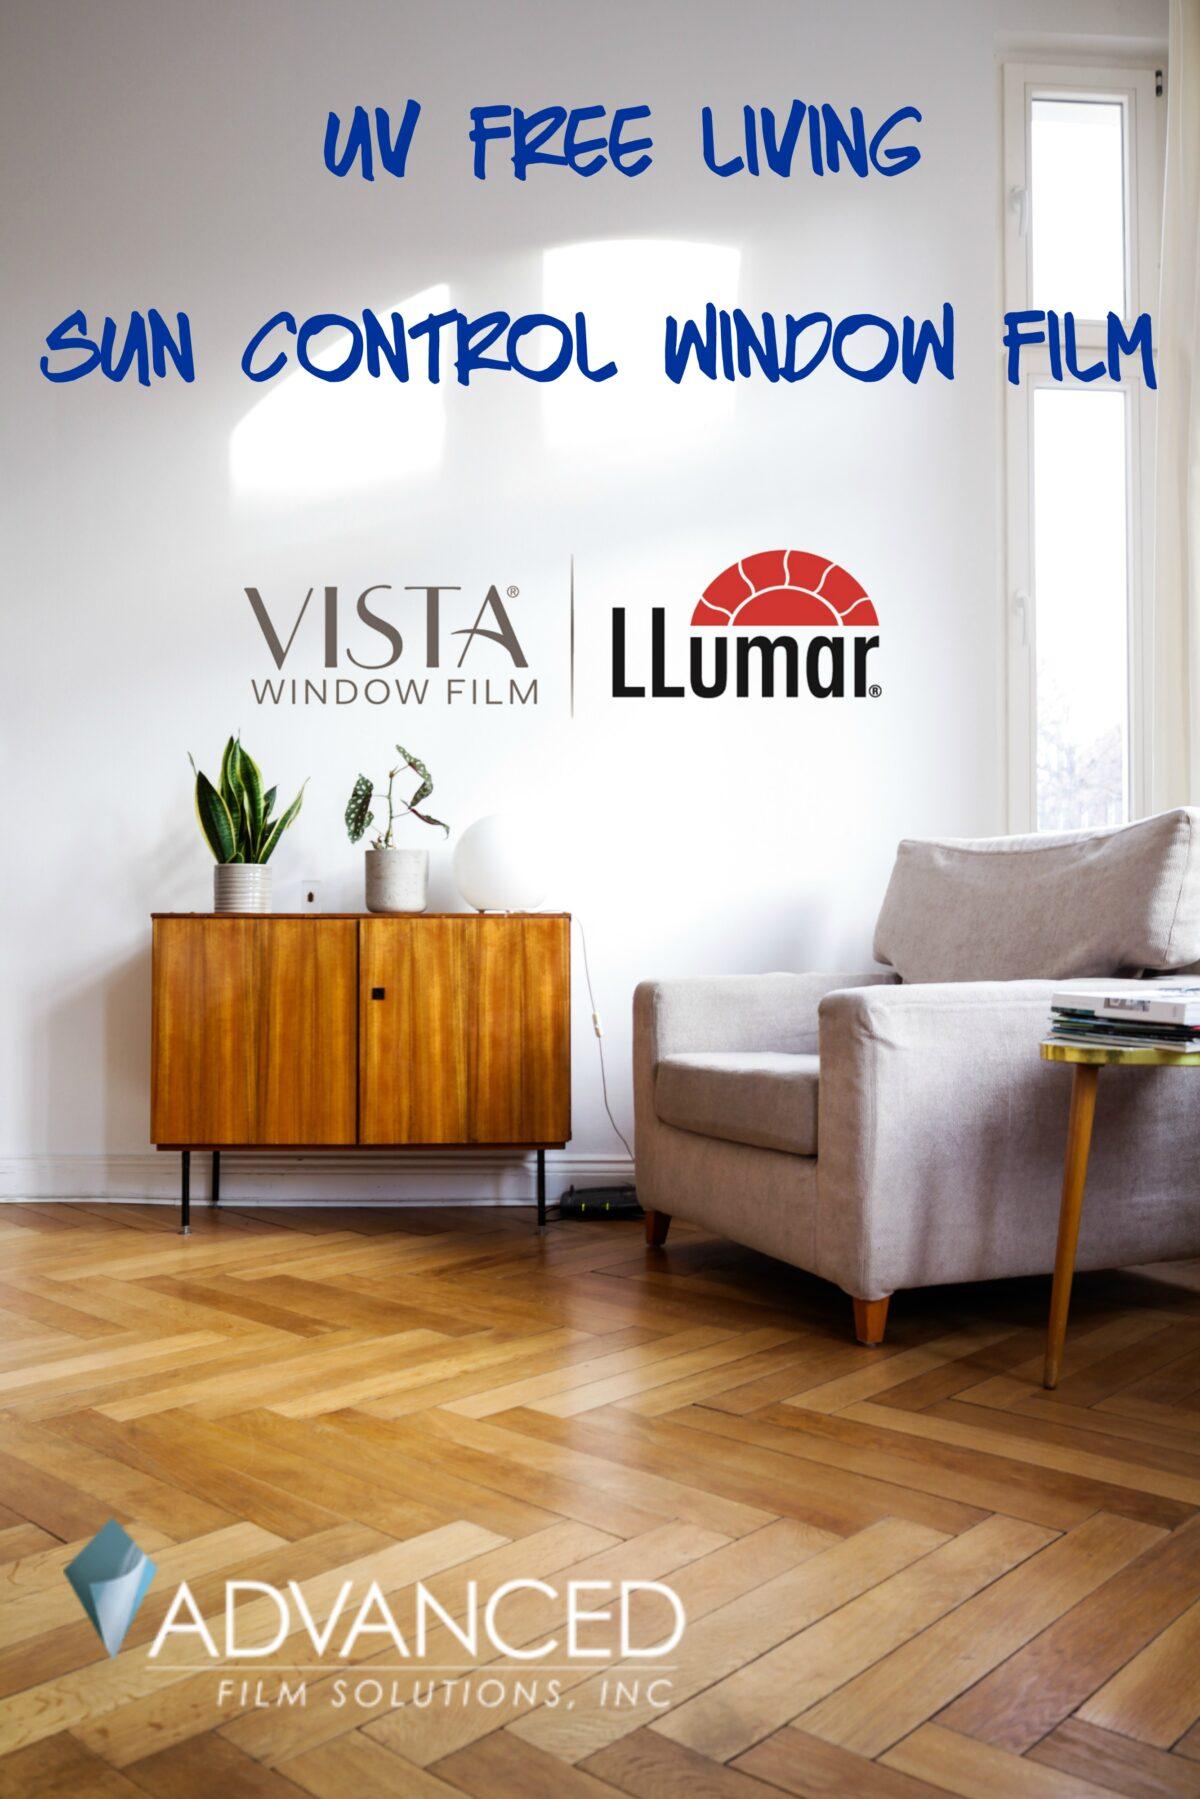 Tampa Bay Protects Wood, Artwork & Furnishings With LLumar Advanced Film Solutions